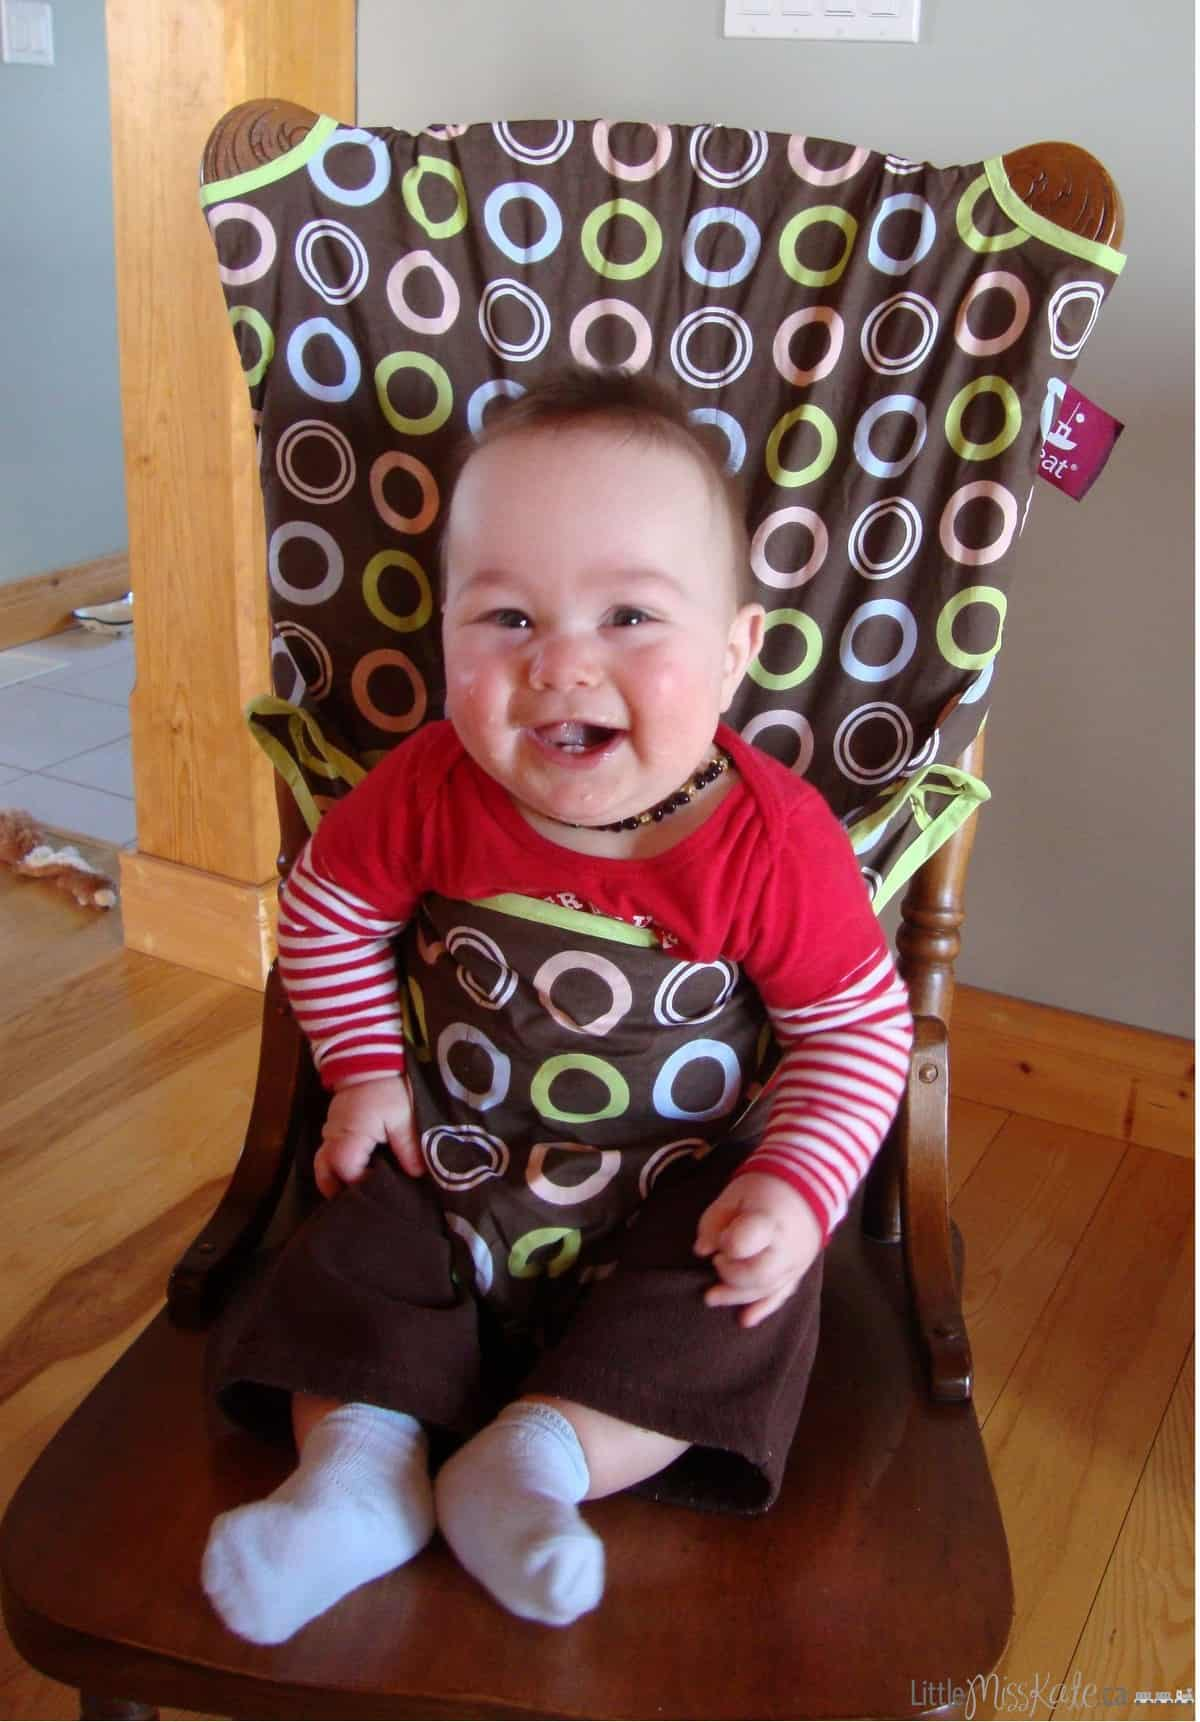 Review – Totseat Travel High Chair